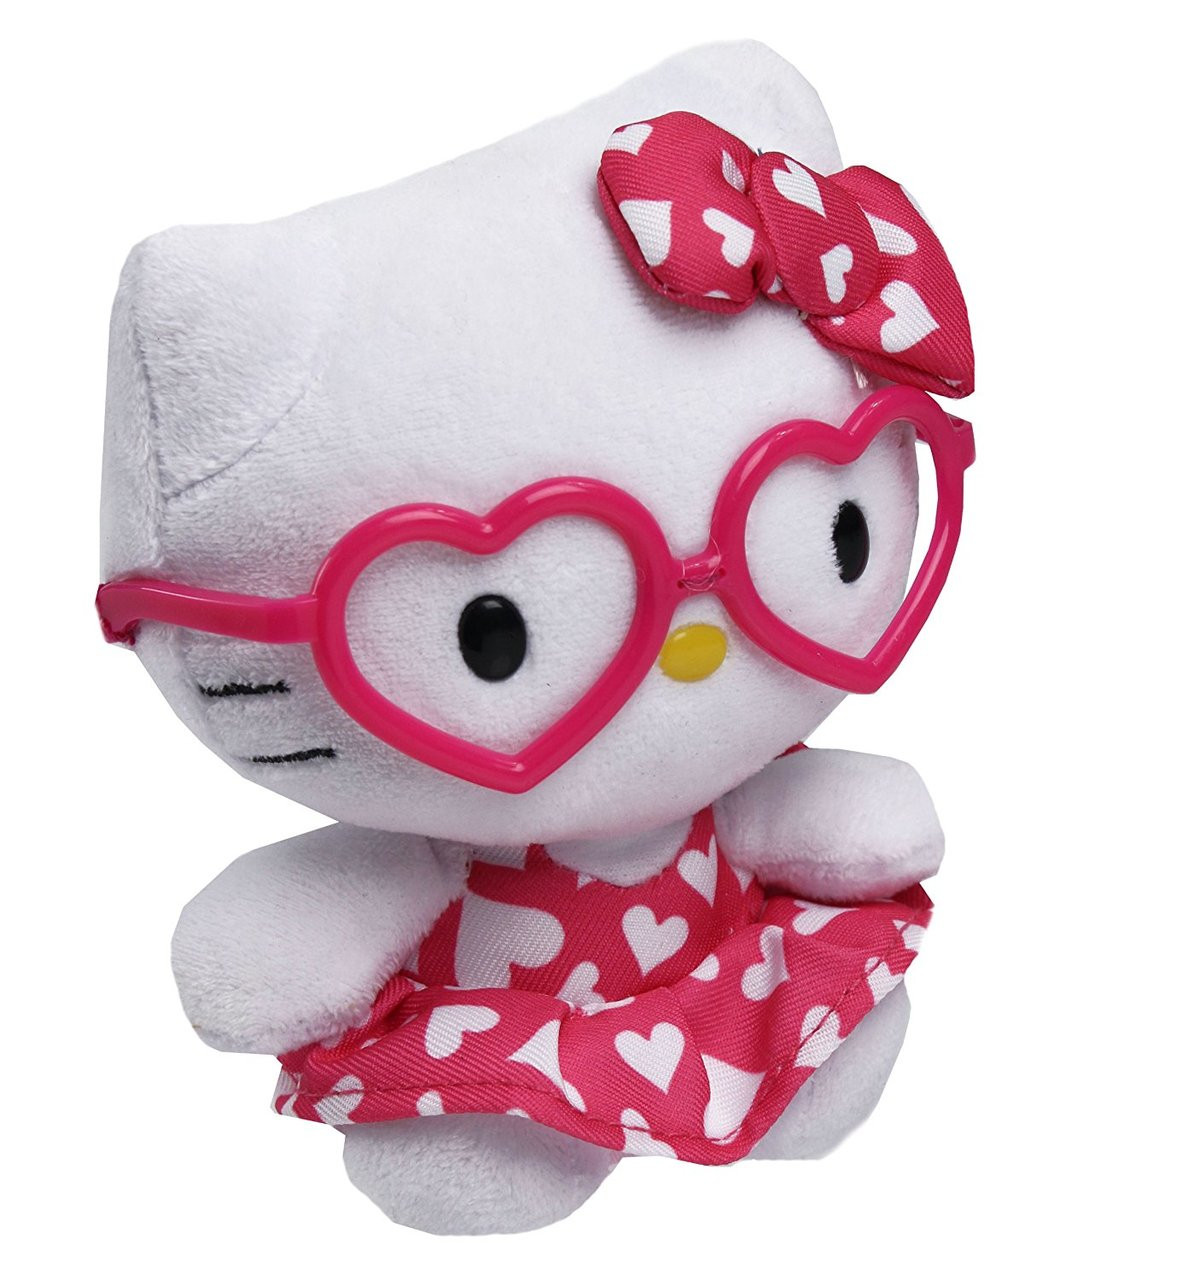 "Hello Kitty Small TY Beanie Baby 6.5"" Plush Toy - Valentine Dress"